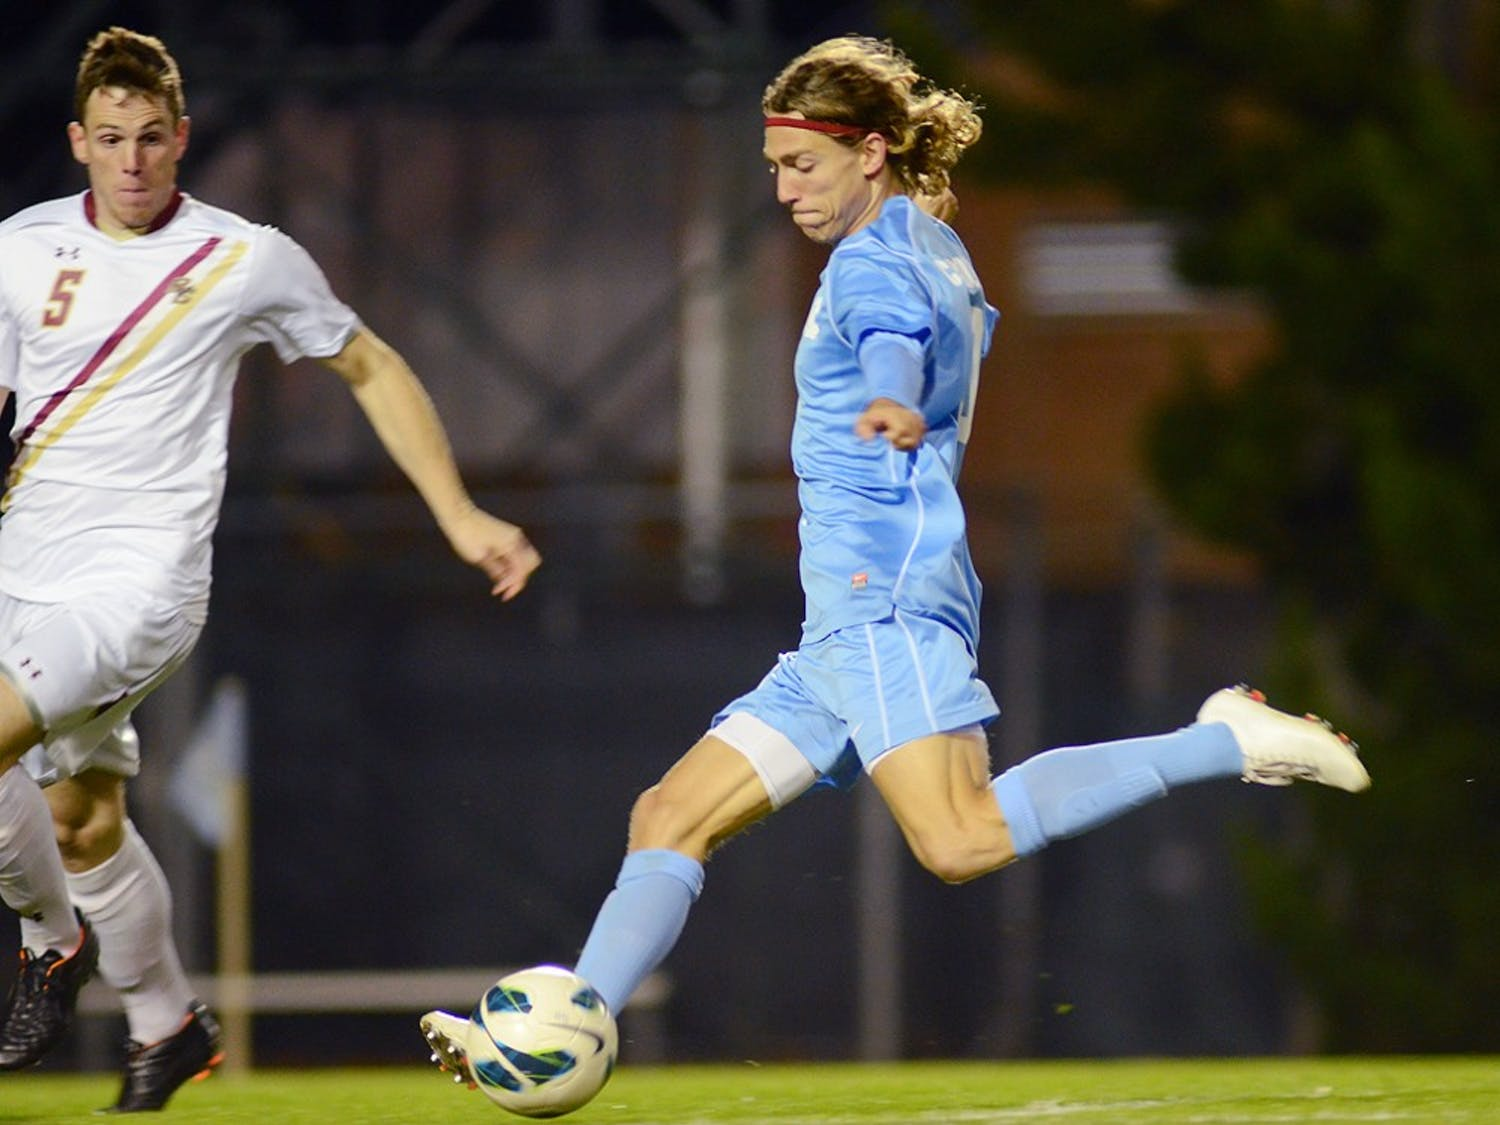 Junior transfer Andy Craven netted the first goal of the game for the Tar Heels in the 20th minute Thursday night at Fetzer Field.